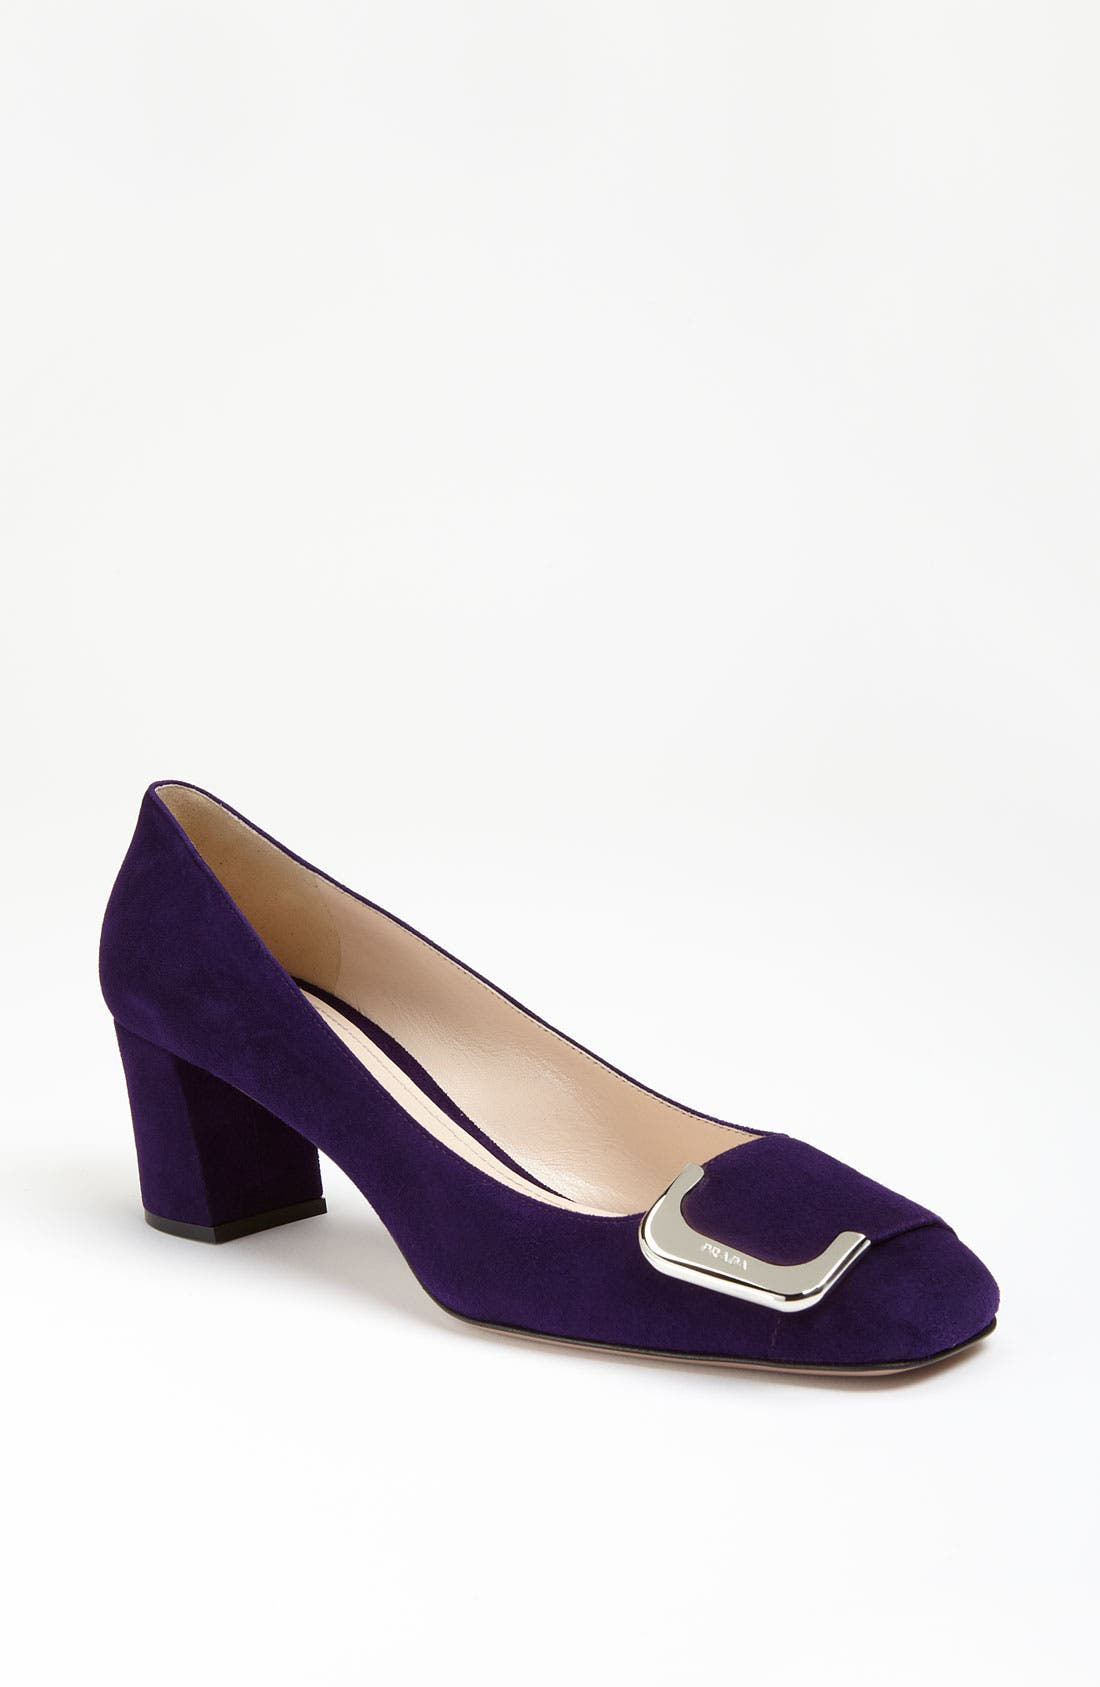 Main Image - Prada Buckle Square Heel Pump